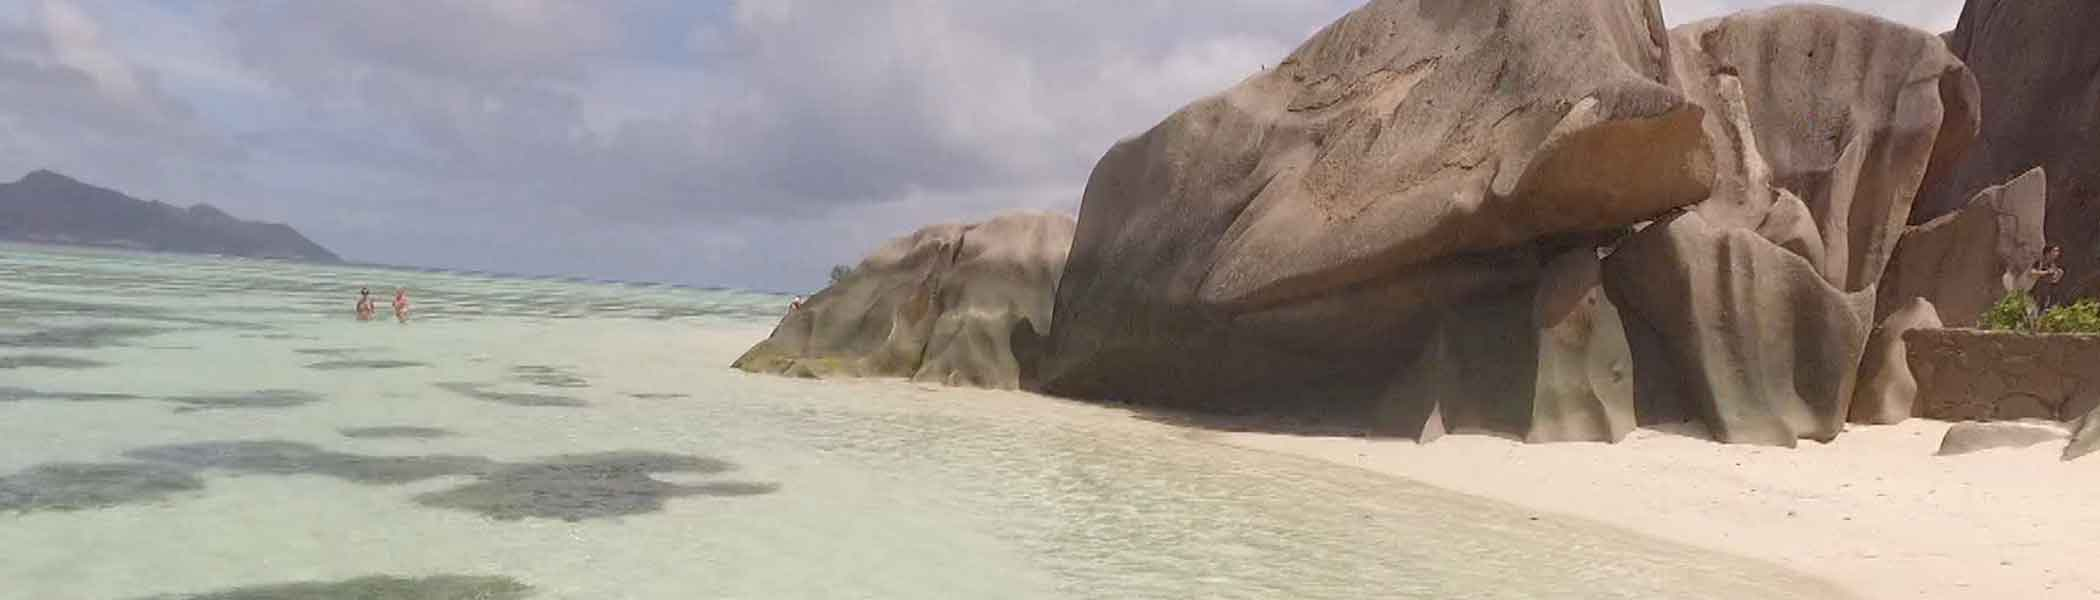 anse-source-dargent, Beaches in Seychelles Islands